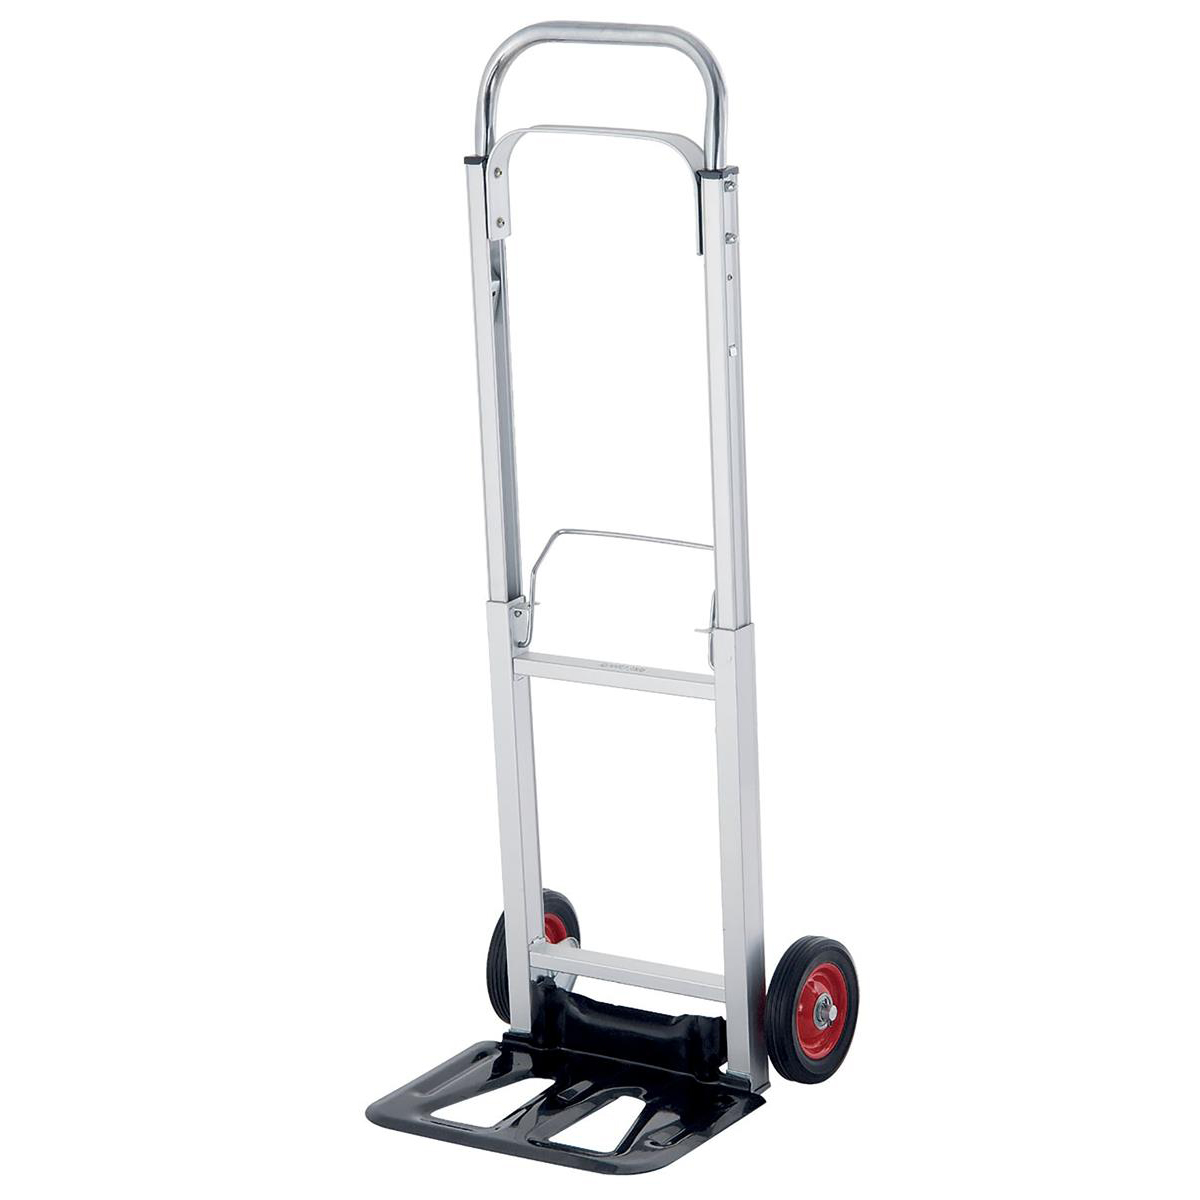 Hand Trolley Telescopic Handle Lightweight Capacity 90kg Foot Size W355xL235mm